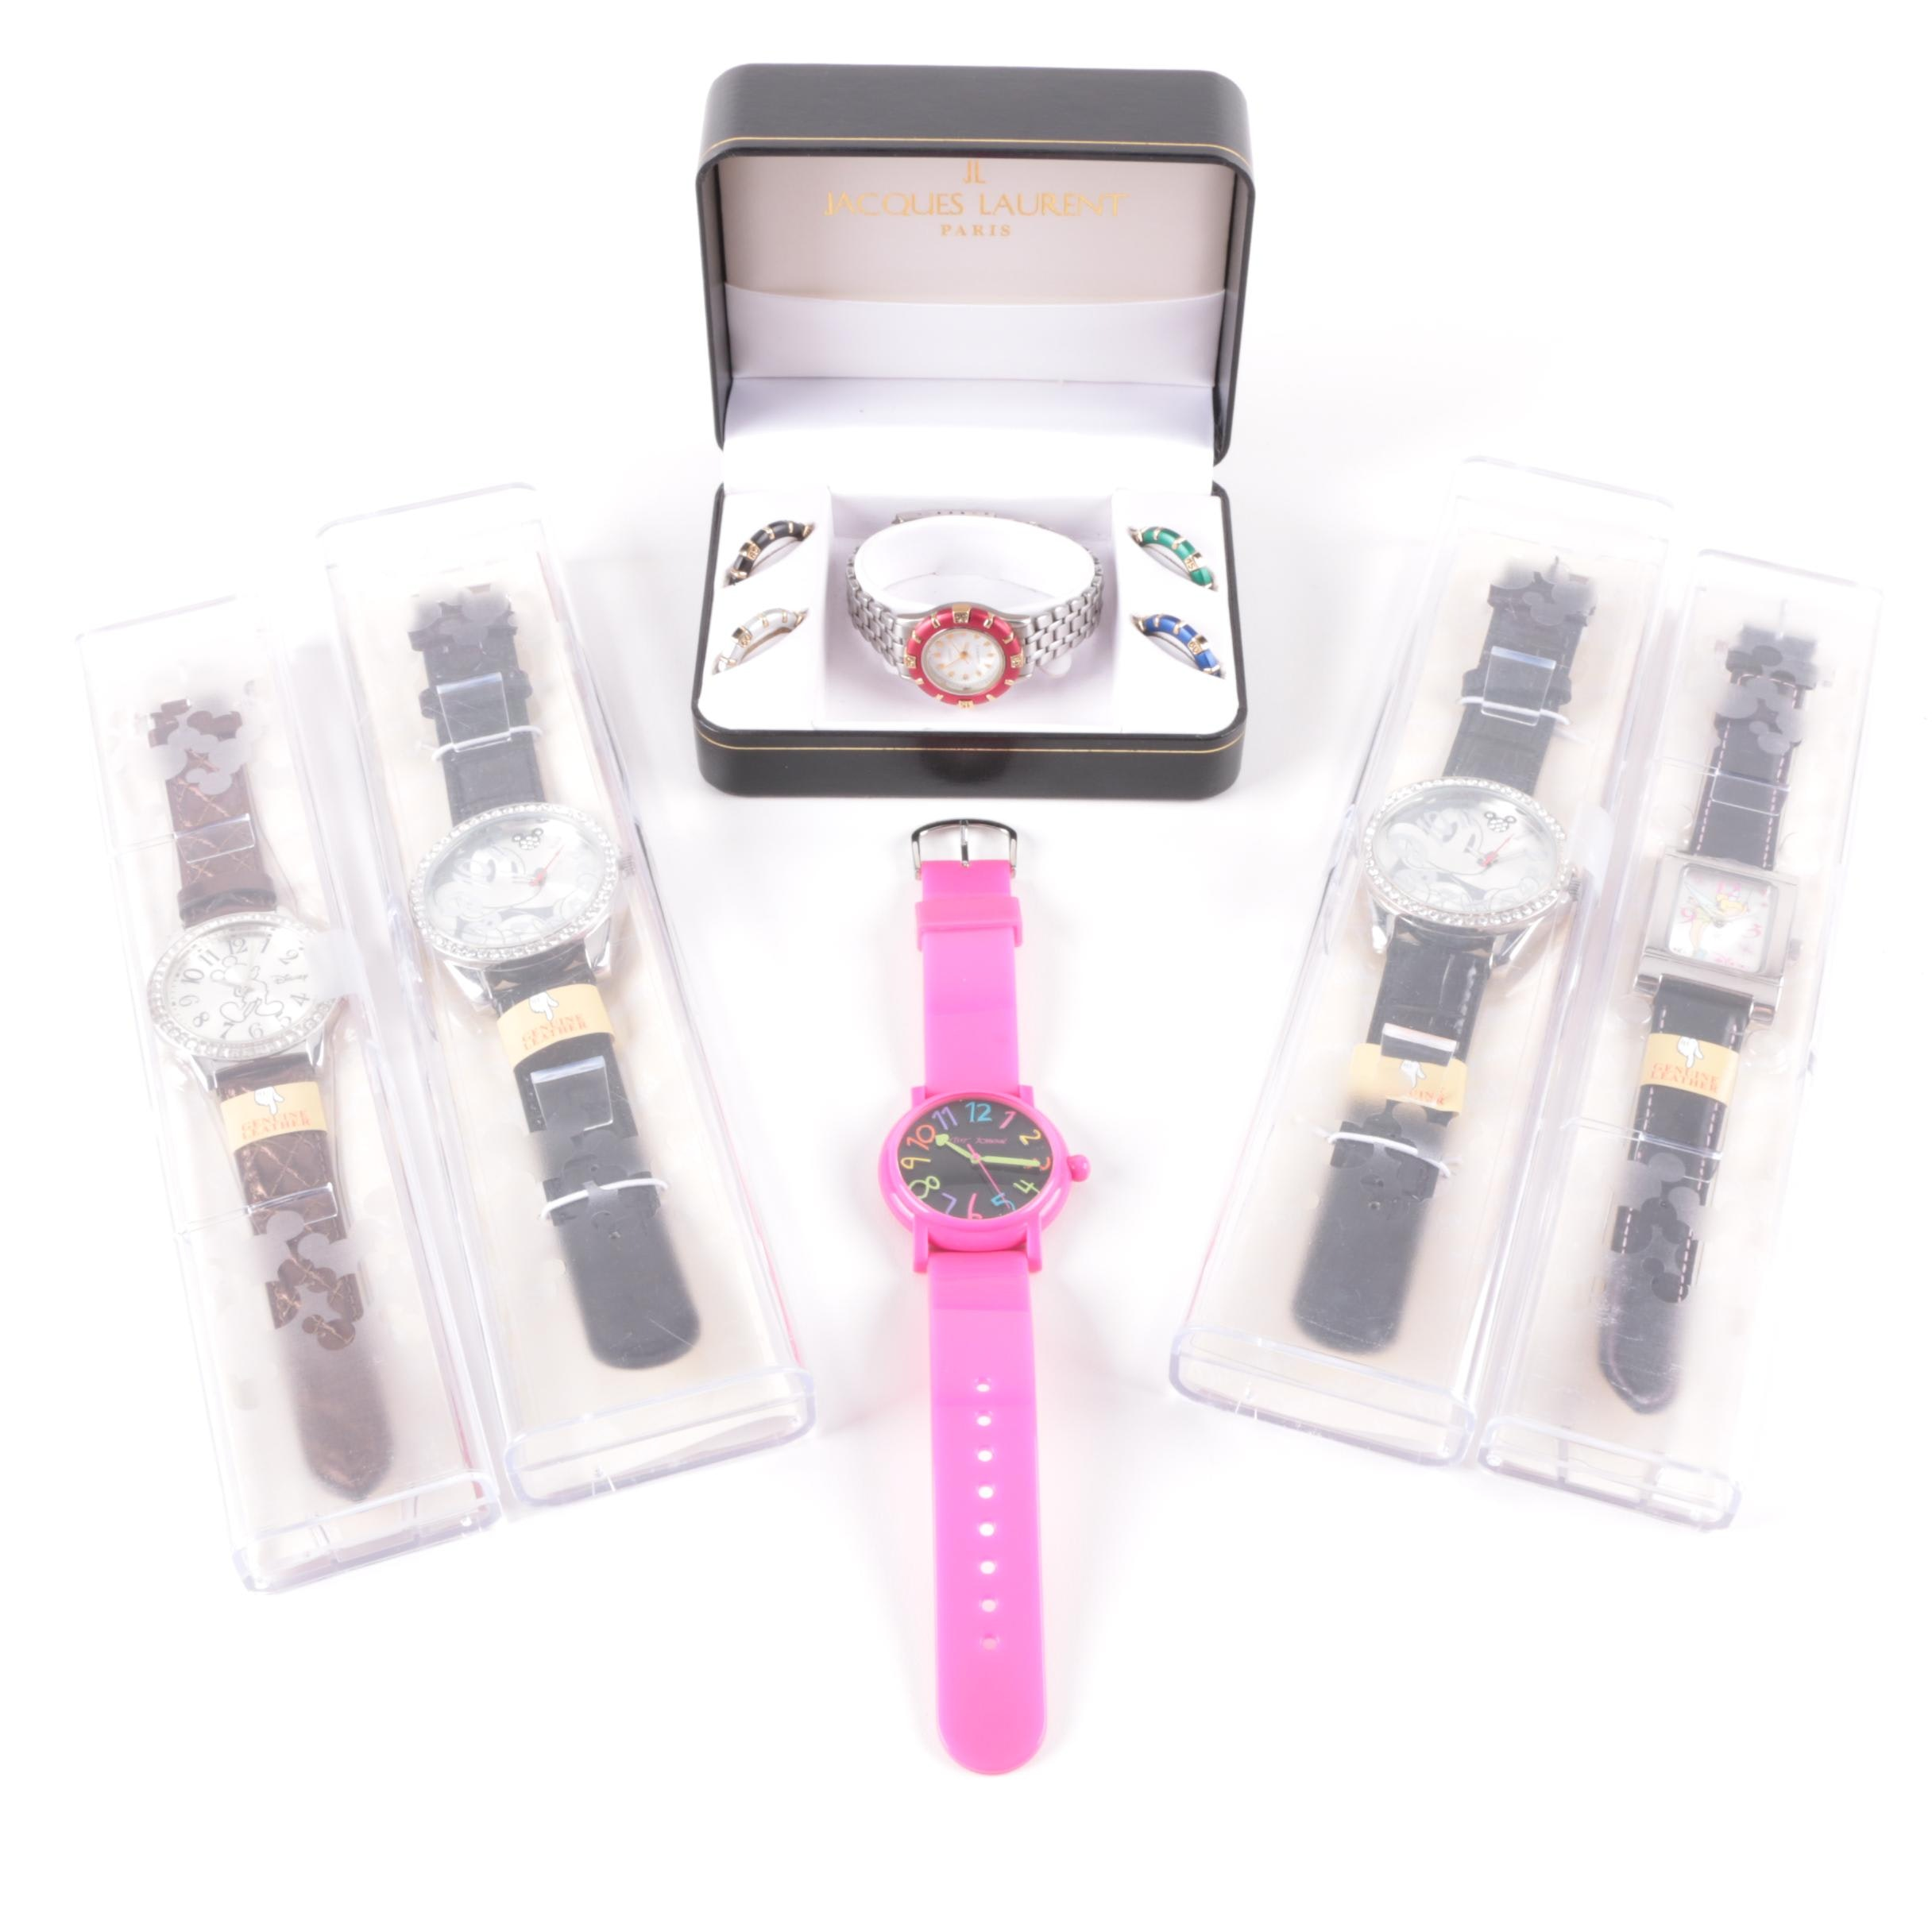 Assortment of Wristwatches Featuring Disney Theme and Betsey Johnson